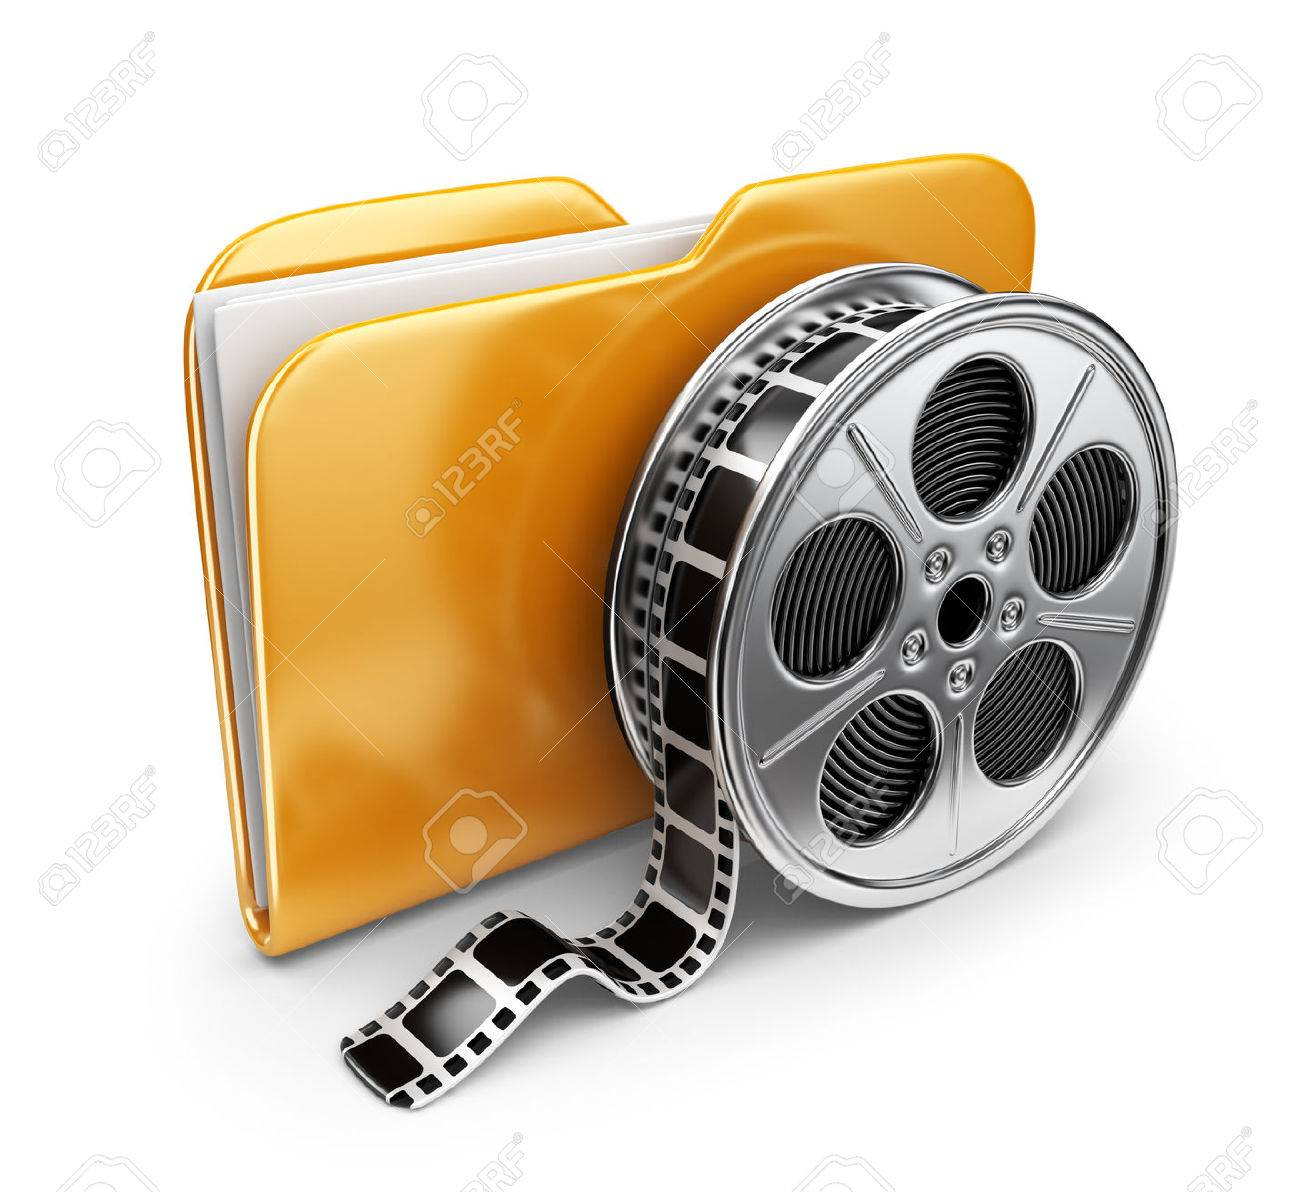 Movie folder with a films spool. 3D Icon isolated on white background - 22189942